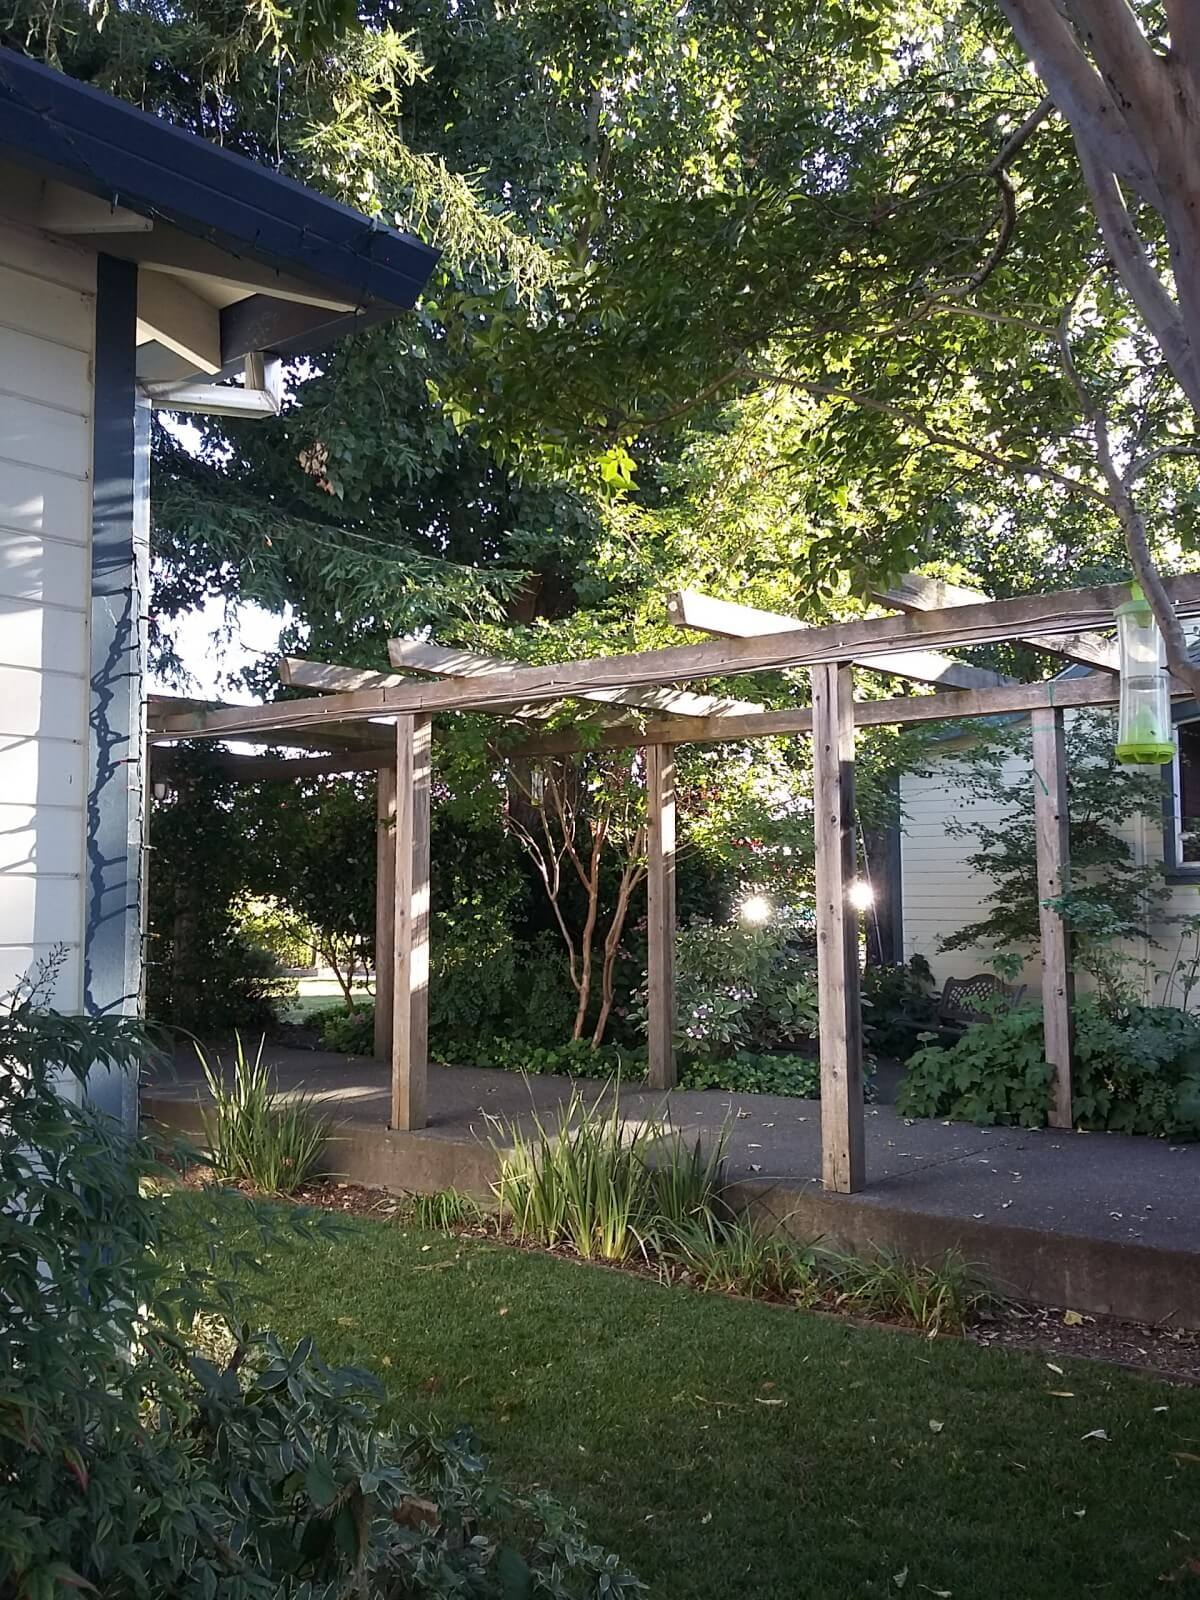 Homes For Sale With A Pergola In Fairhope Daphne And Spanish Fort